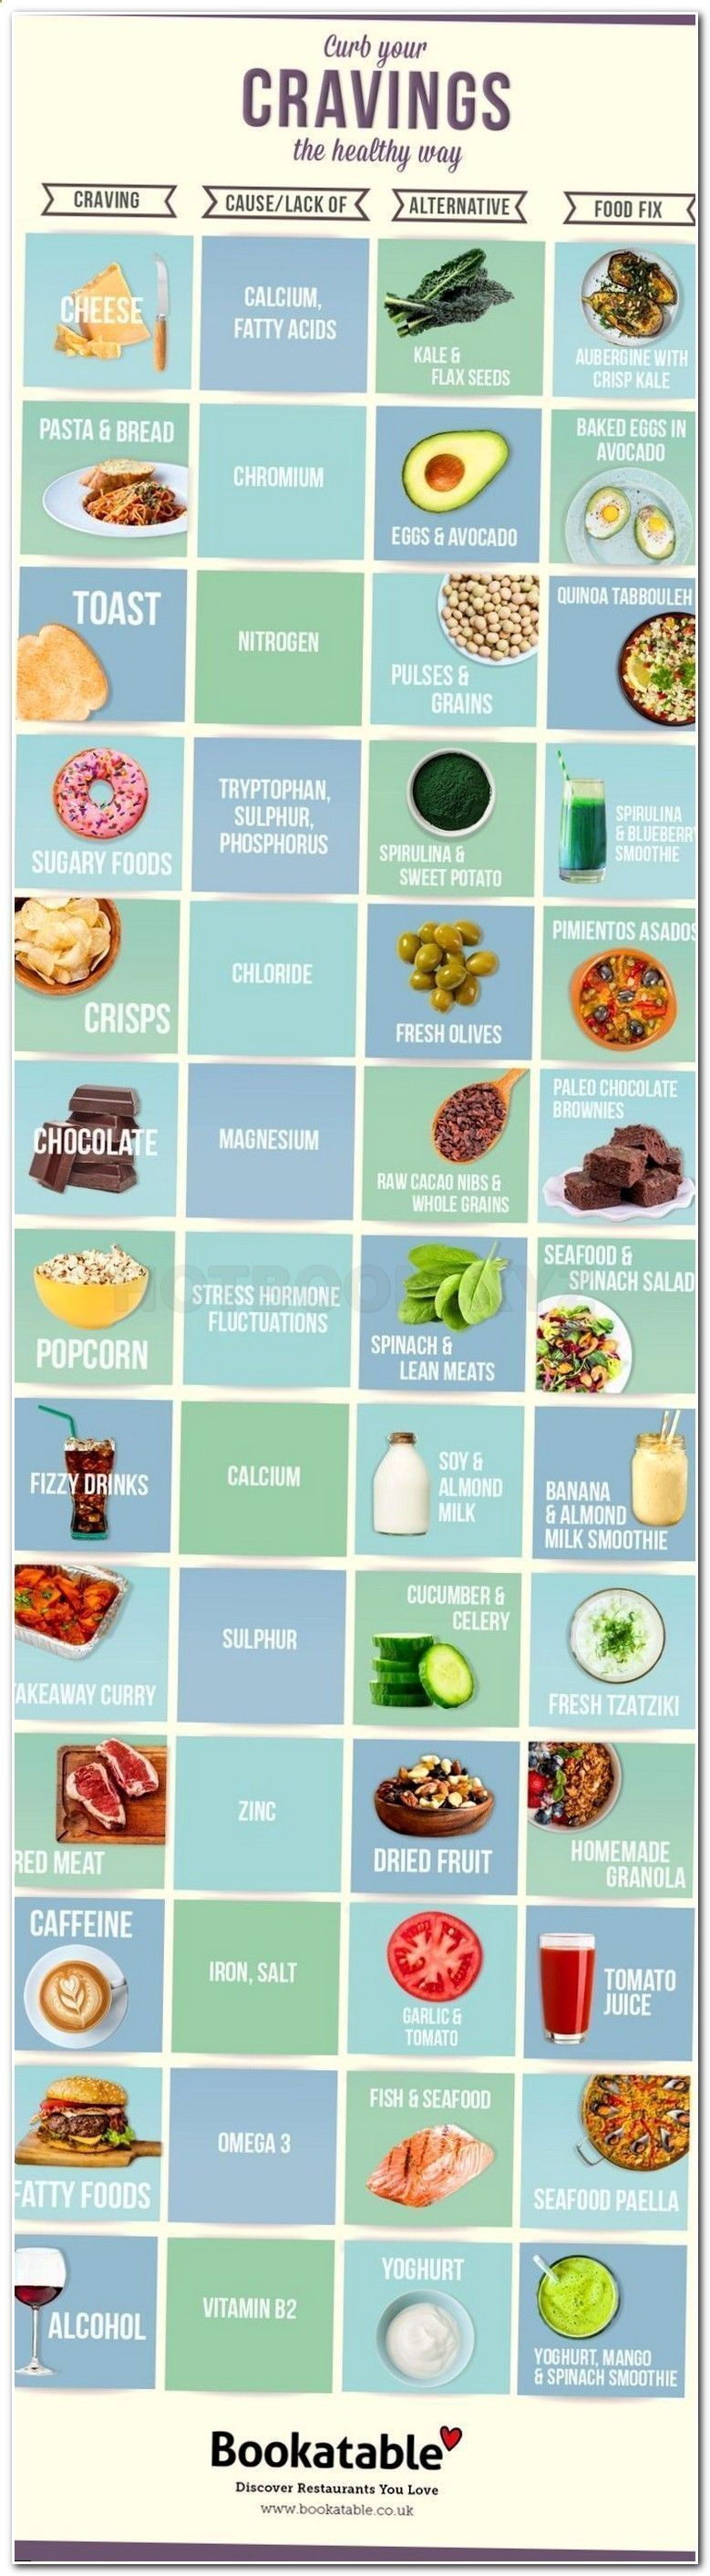 The 3 week diet loss weight plan simple tips to lose weight fast the 3 week diet loss weight plan simple tips to lose weight fast about weight loss 1200 calories per day menu low fat high protein meal plan raw food forumfinder Image collections